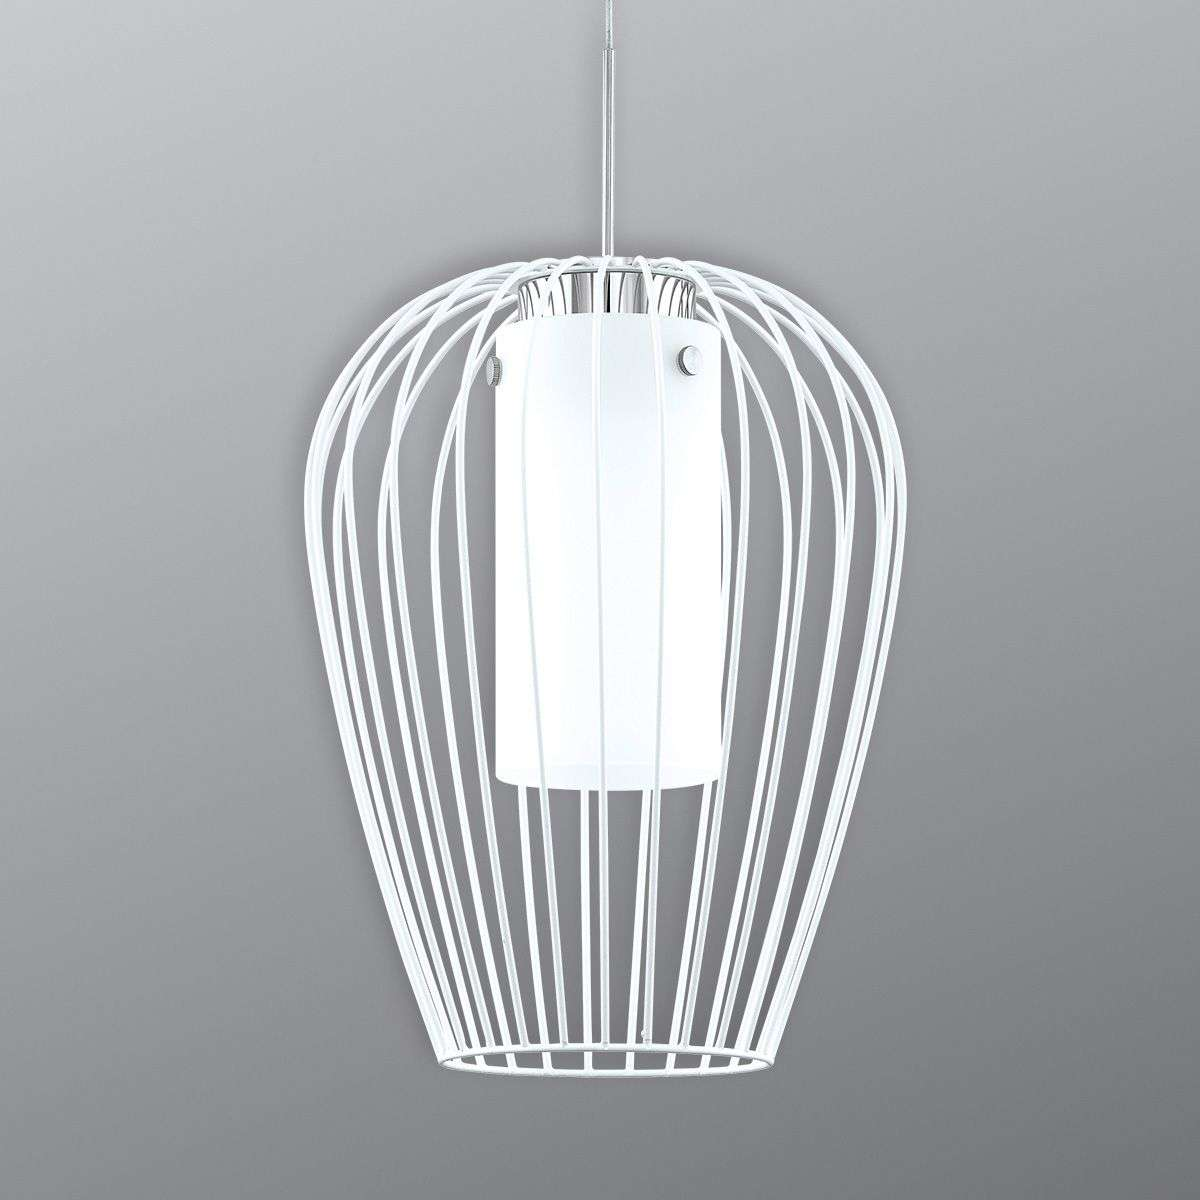 LED hanglamp Vencino uit staal-3031735-31